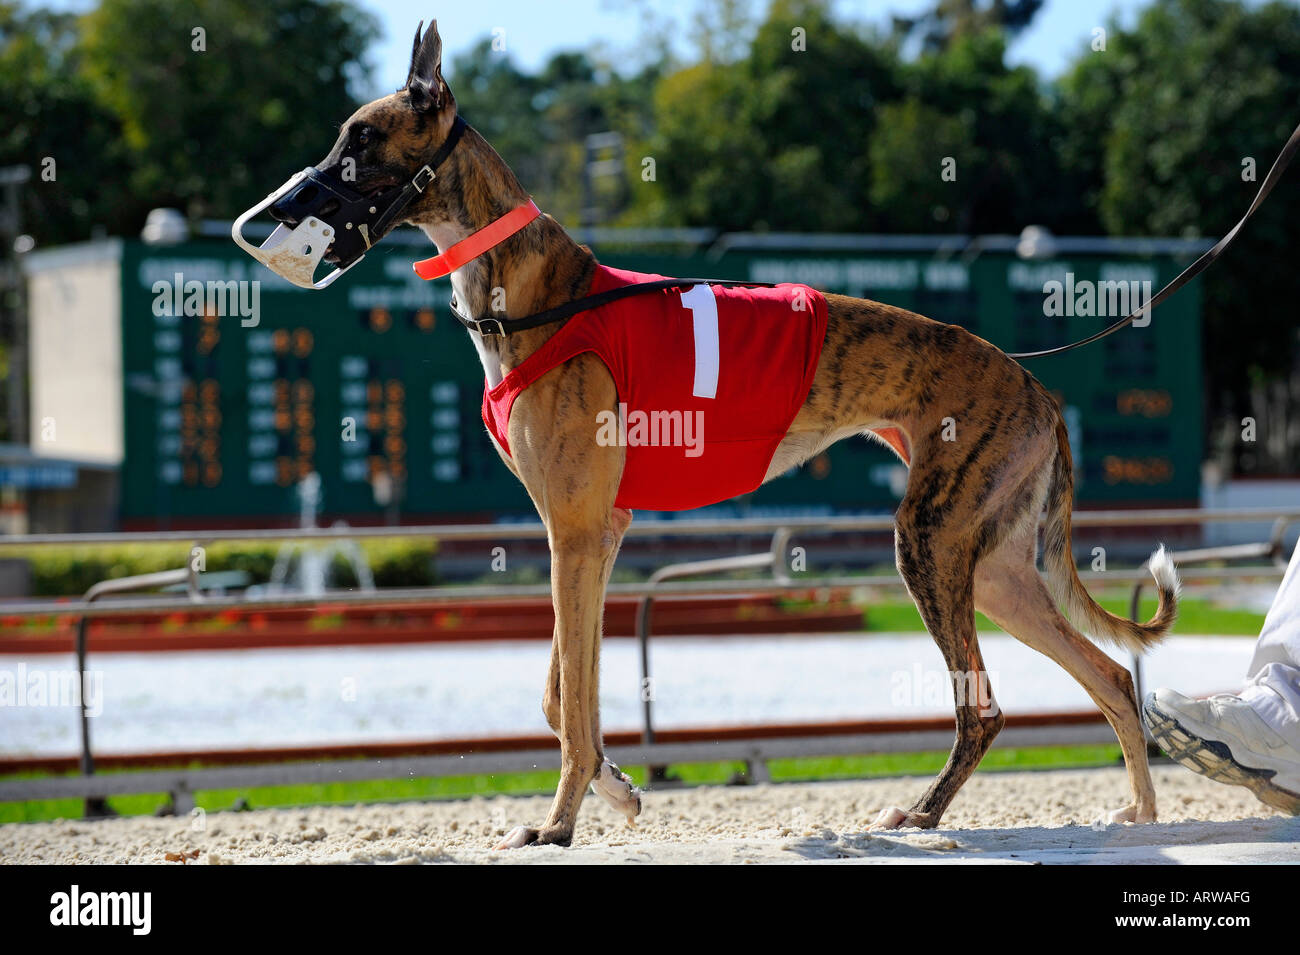 Greyhound dog racing at Fort Myers Naples dog track Florida - Stock Image